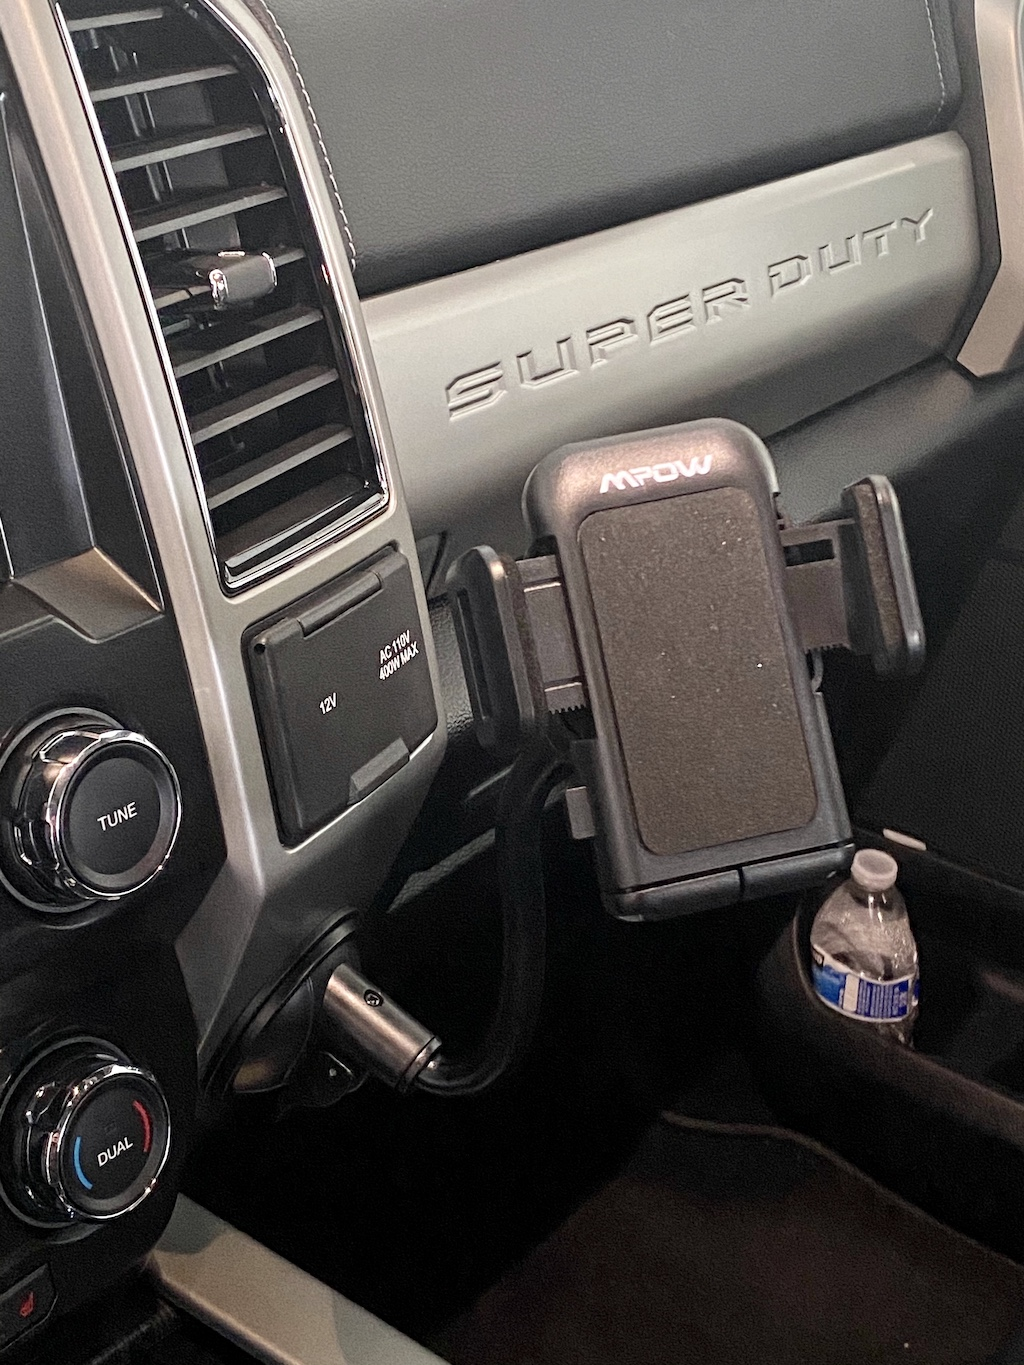 f250-phone-holder.jpeg